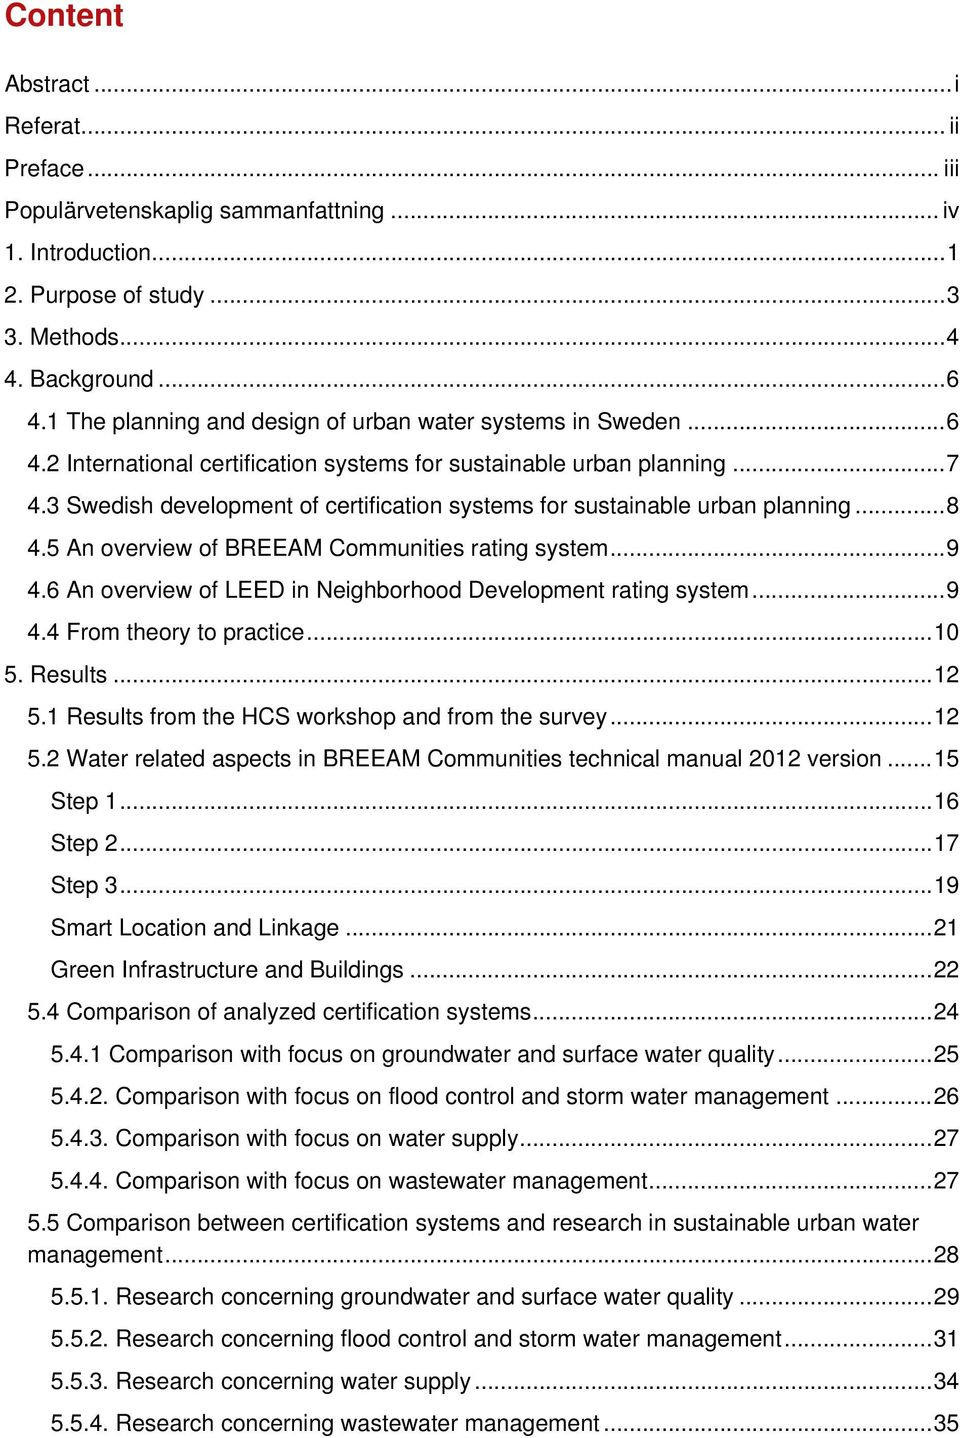 3 Swedish development of certification systems for sustainable urban planning... 8 4.5 An overview of BREEAM Communities rating system... 9 4.